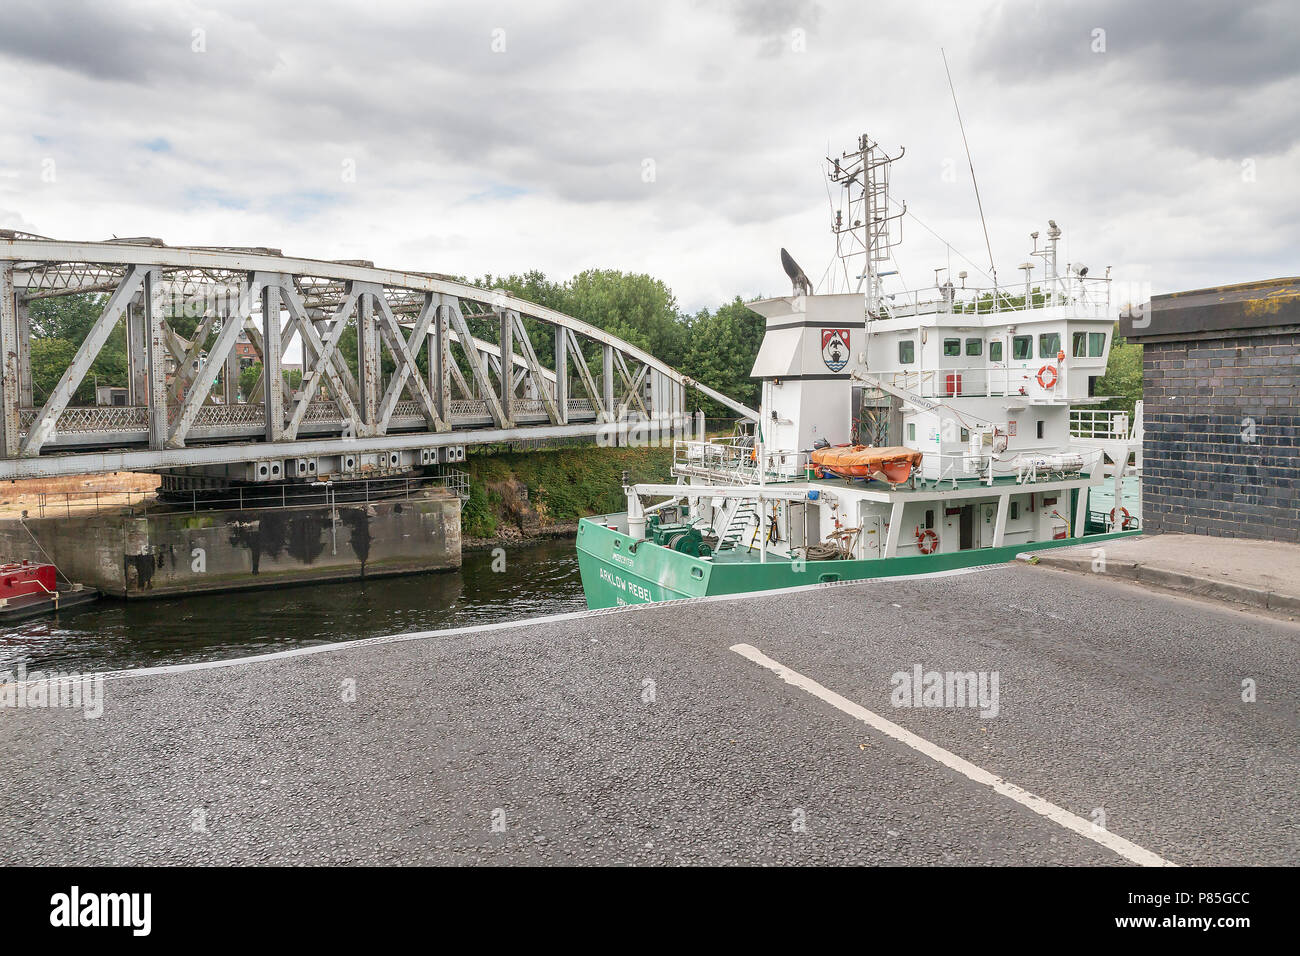 Arklow Rebel, a 13 year old General Cargo Ship from Ireland travels along the Manchester Ship Canal, through the open Swing Bridge at Stockton Heath - Stock Image